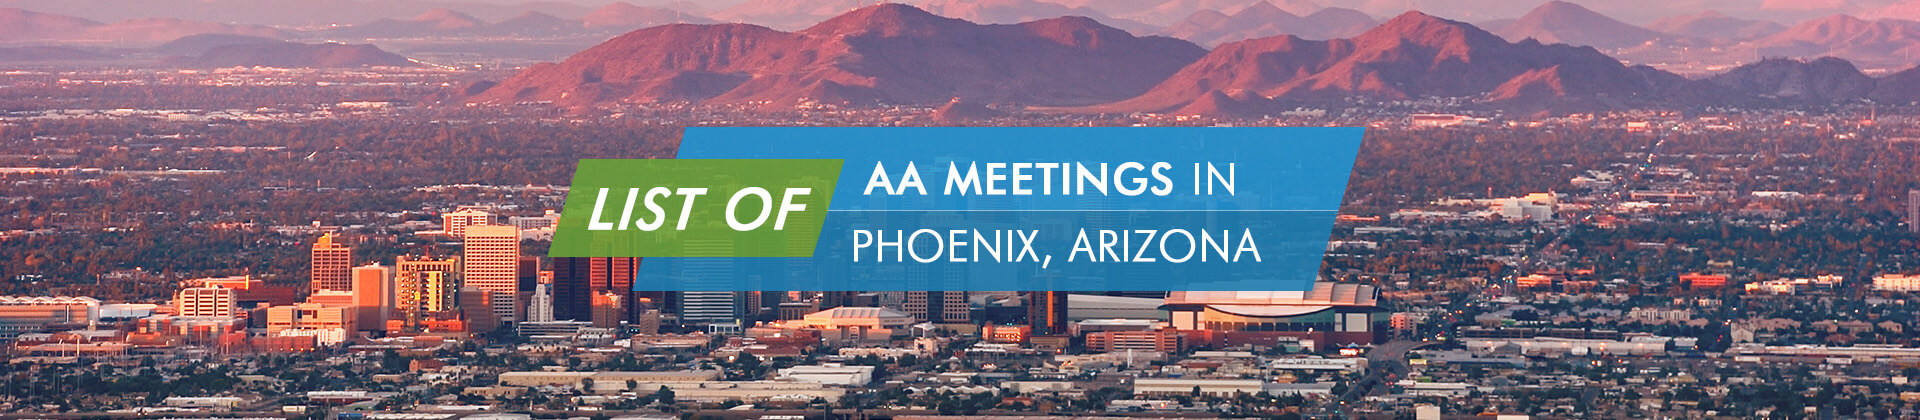 AA Meetings Phoenix Arizona